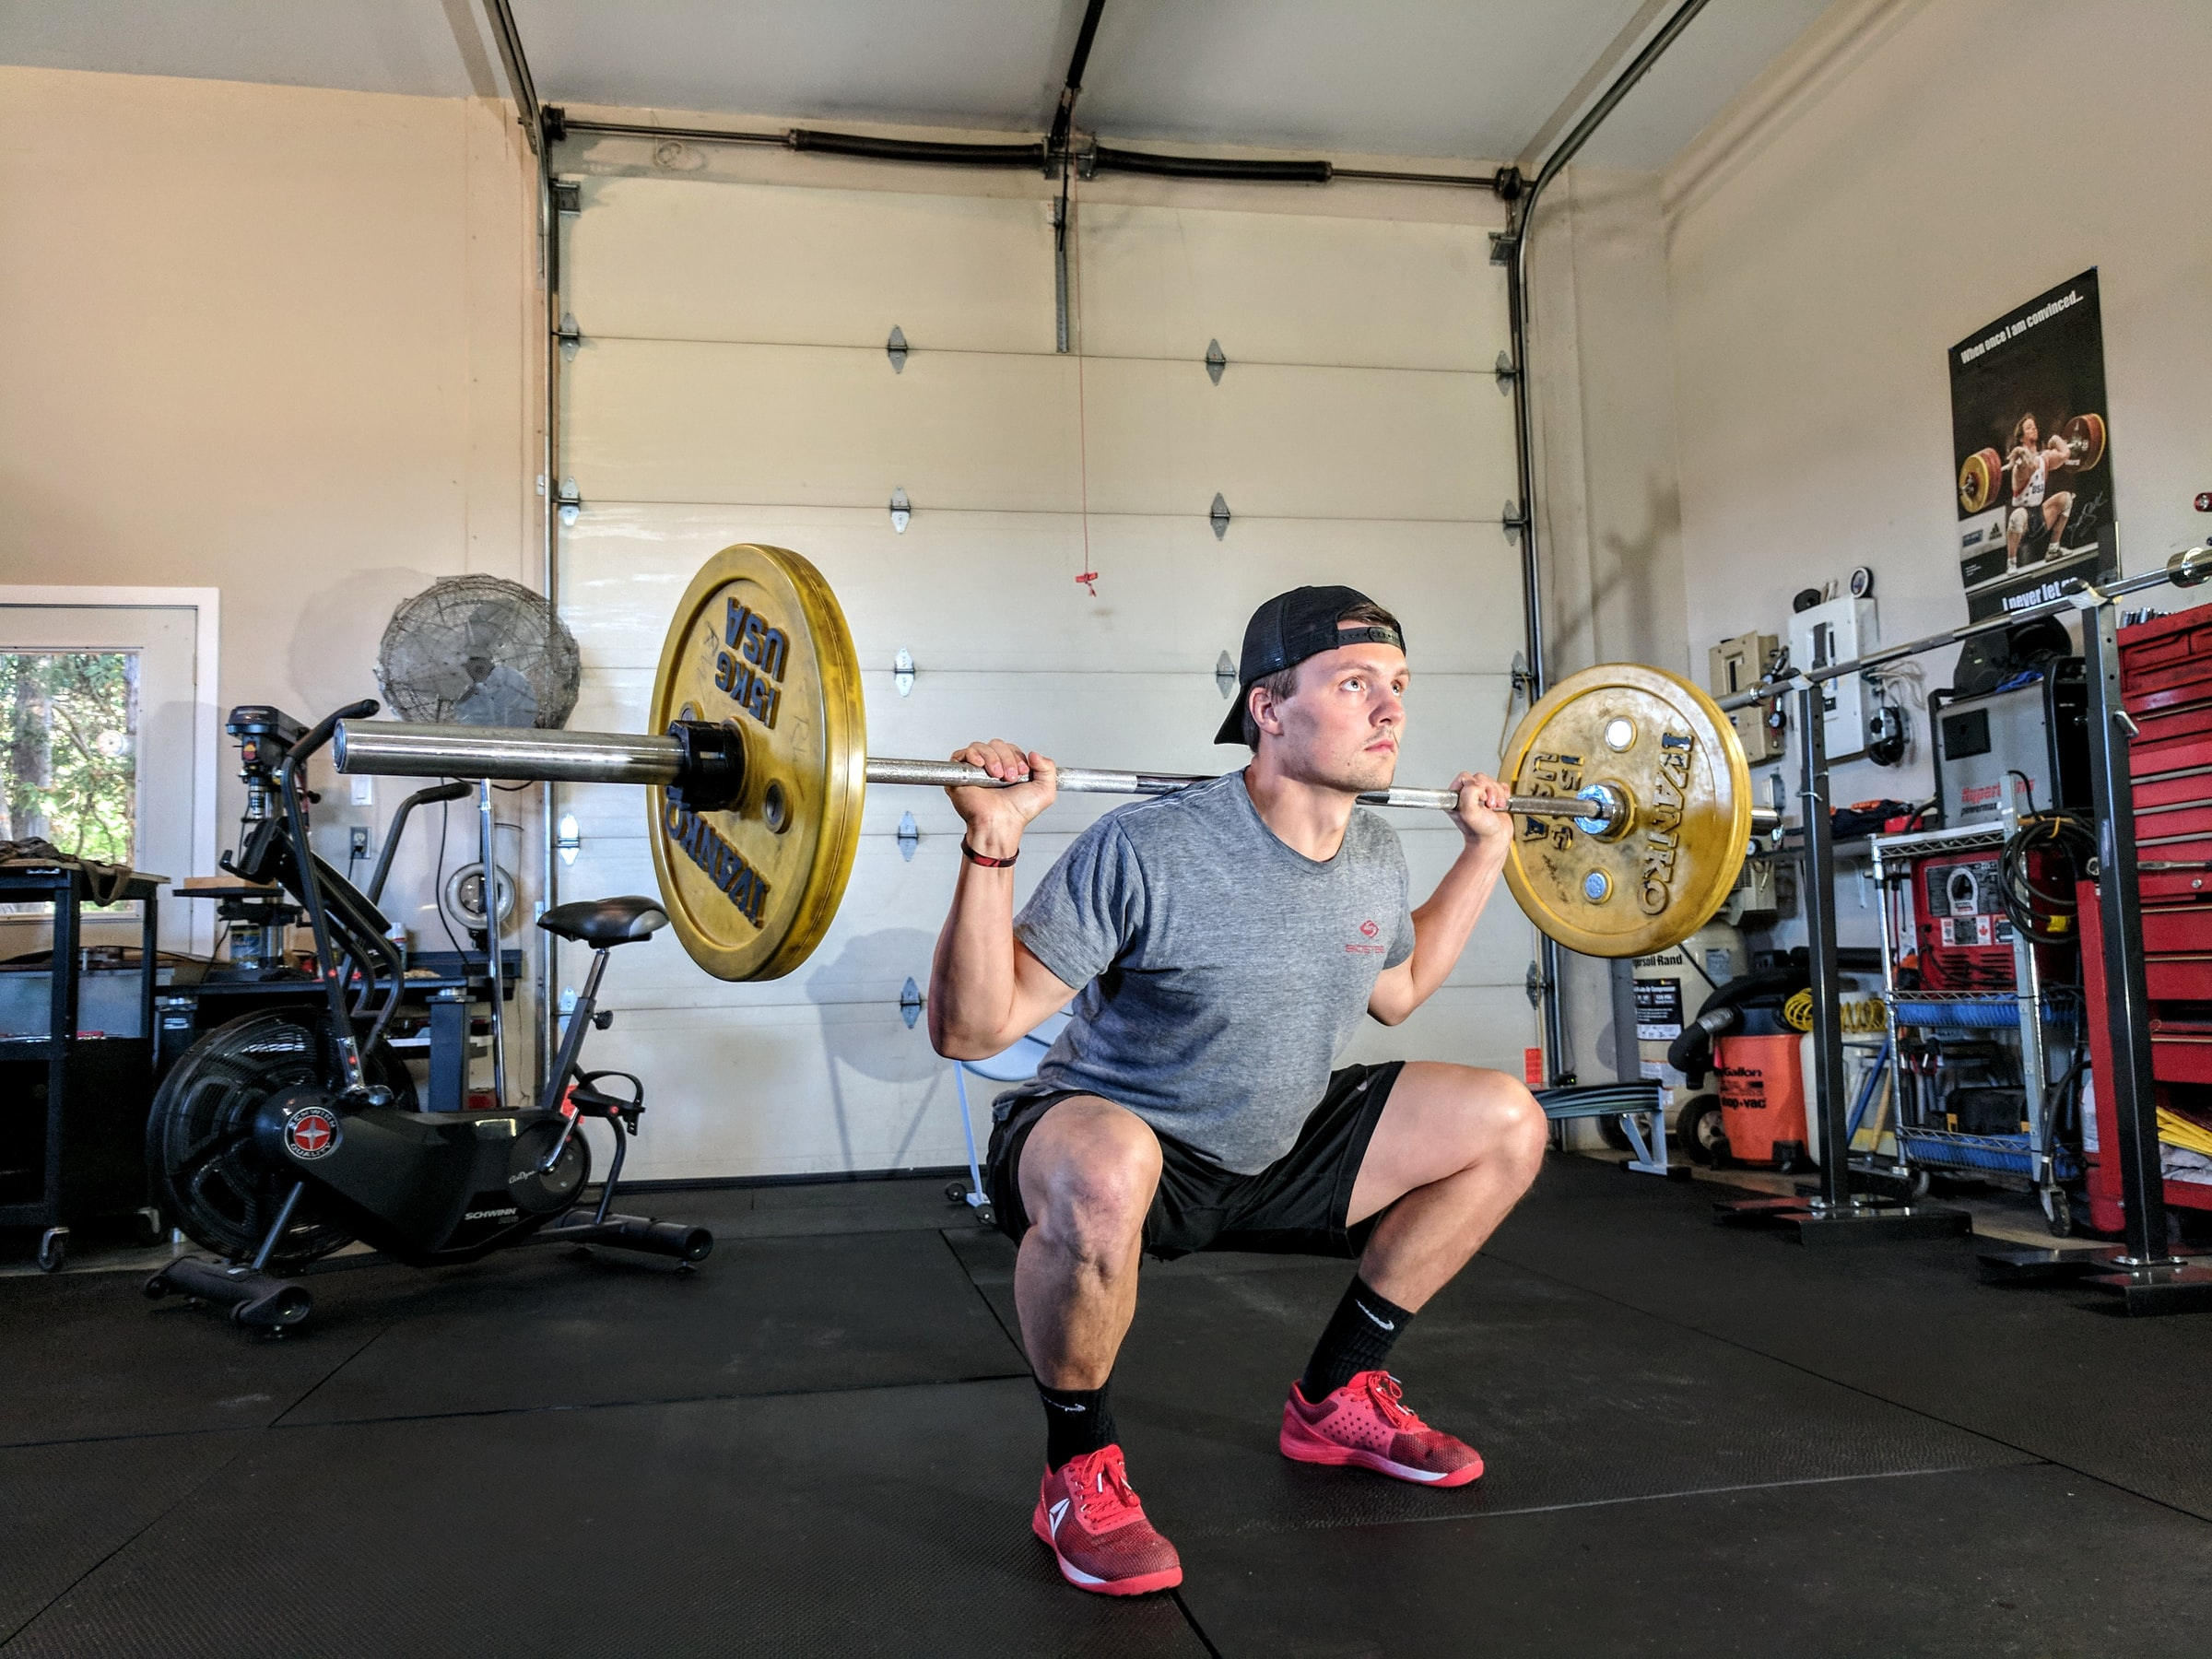 Man working out at home in garage